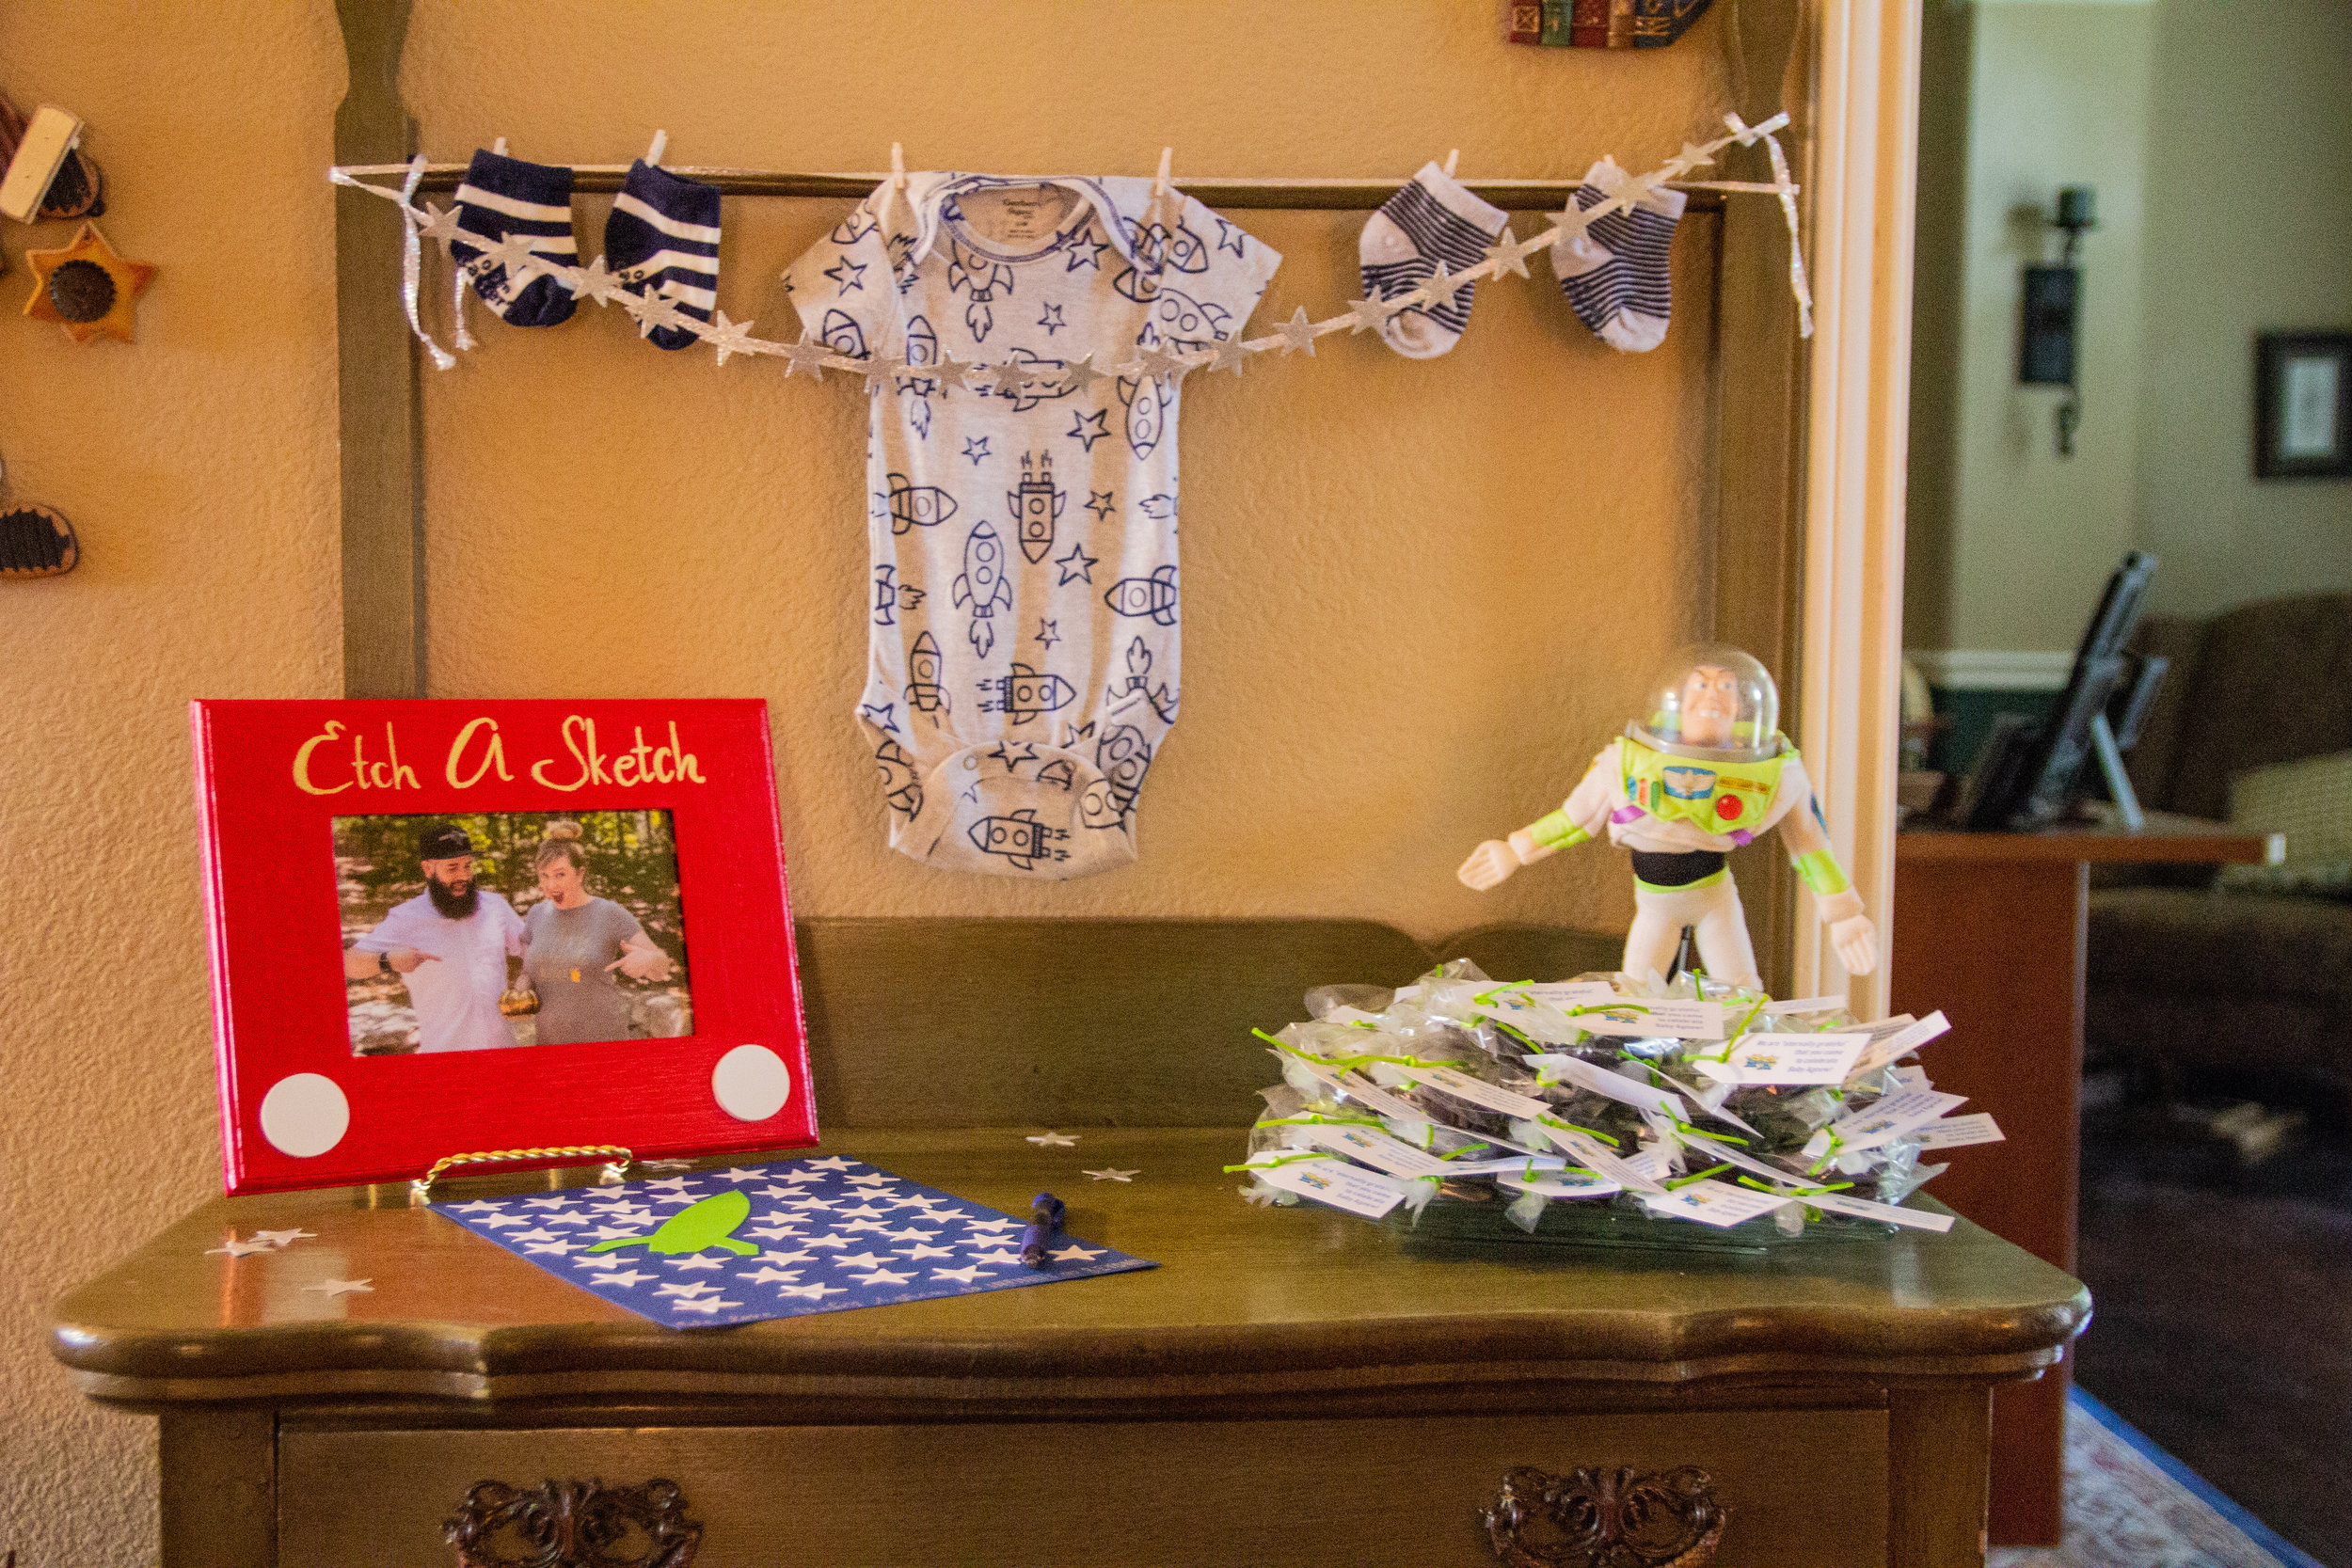 Toy Story Baby Shower Decorations  from images.squarespace-cdn.com